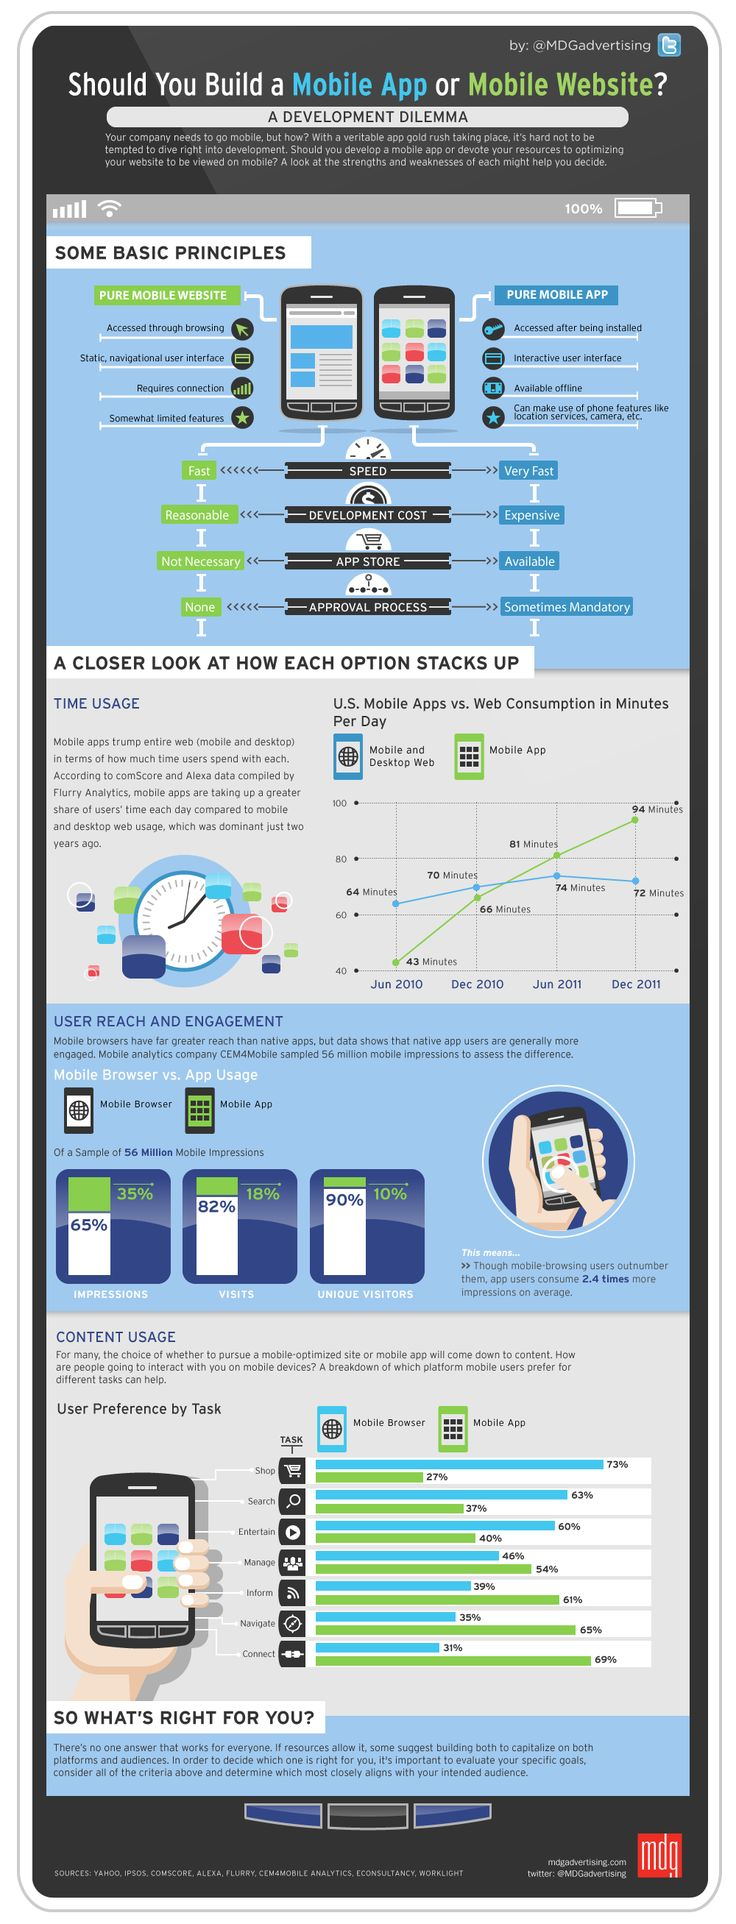 SHOULD BRANDS BUILD AN APP OR A MOBILE SITE? [INFOGRAPHIC]